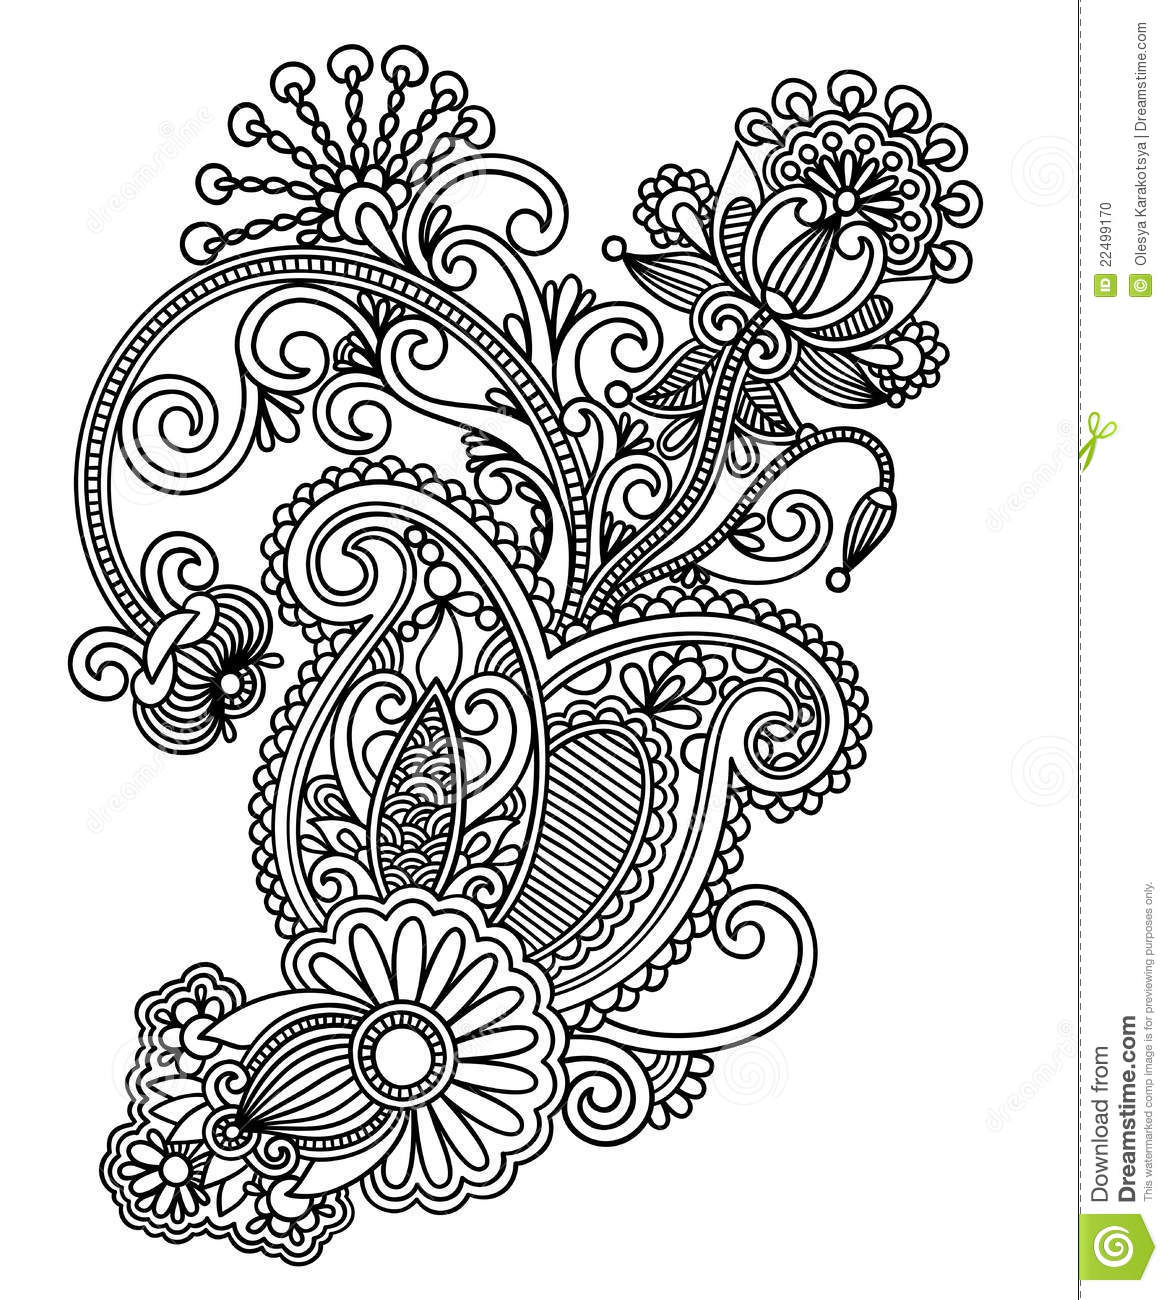 Line Art Typography : Line art ornate flower design stock vector illustration